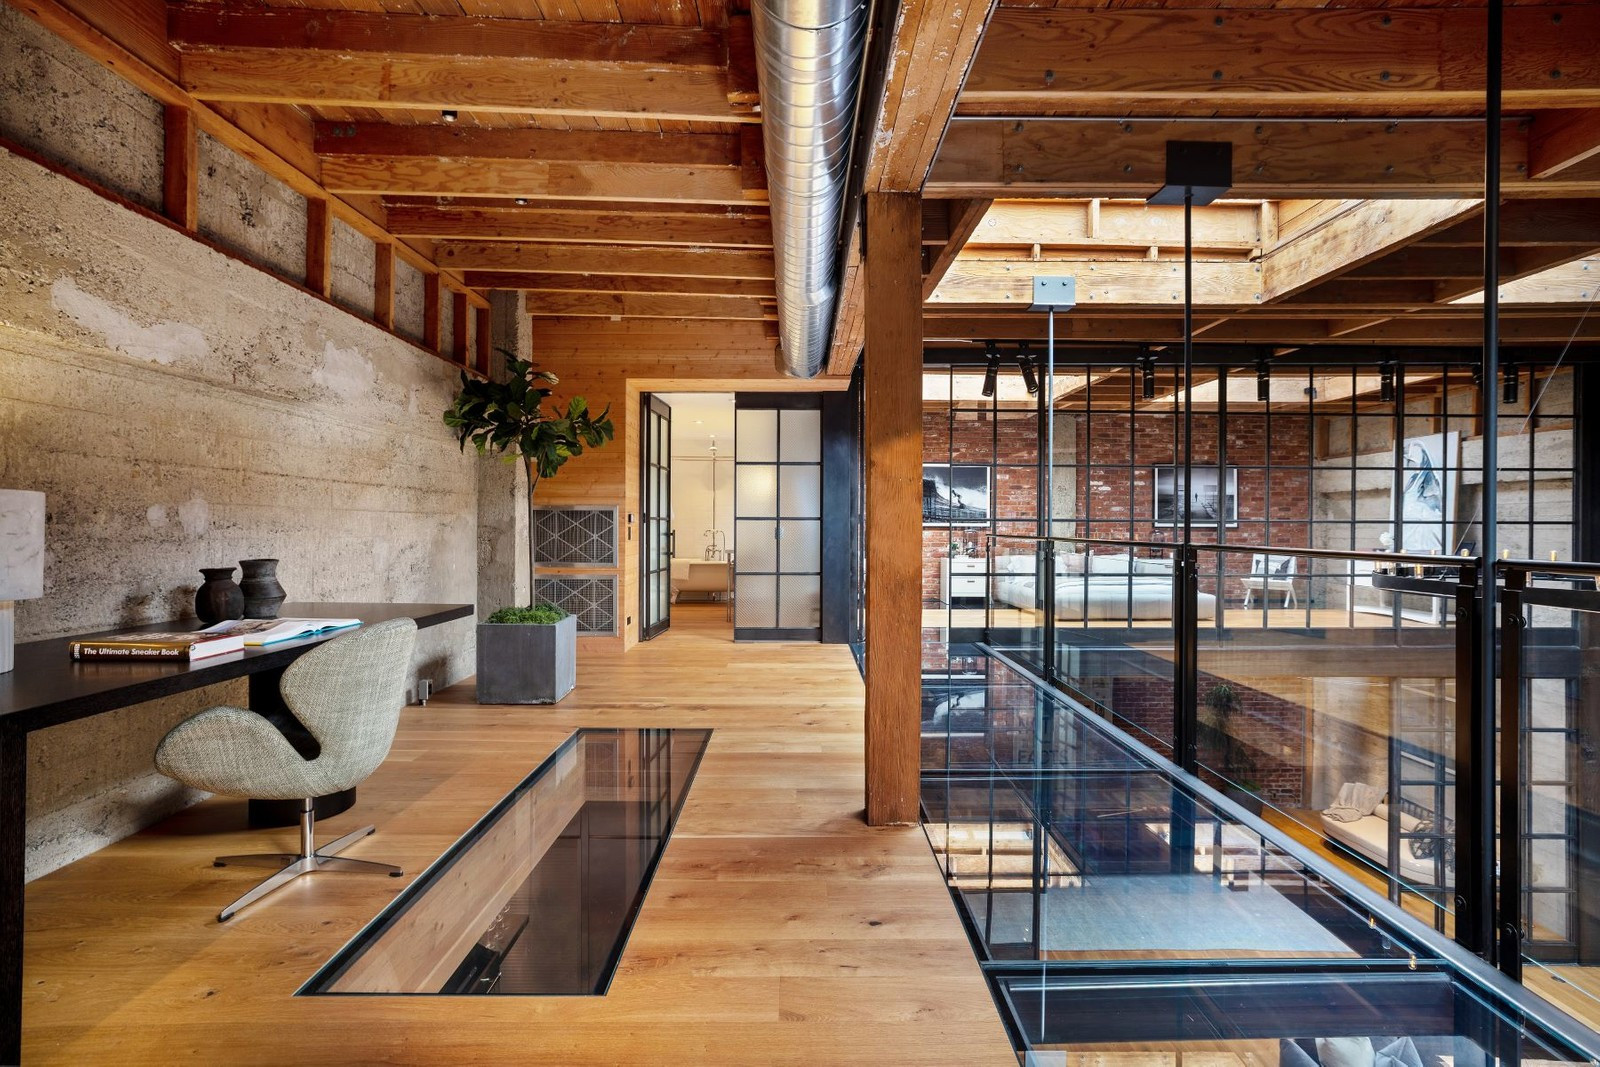 Crittall glass and wall partitions create lightflow across the three-storey property. On the mezzanine, a glass floor plate acts in a similar fashion, funnelling light into the space below